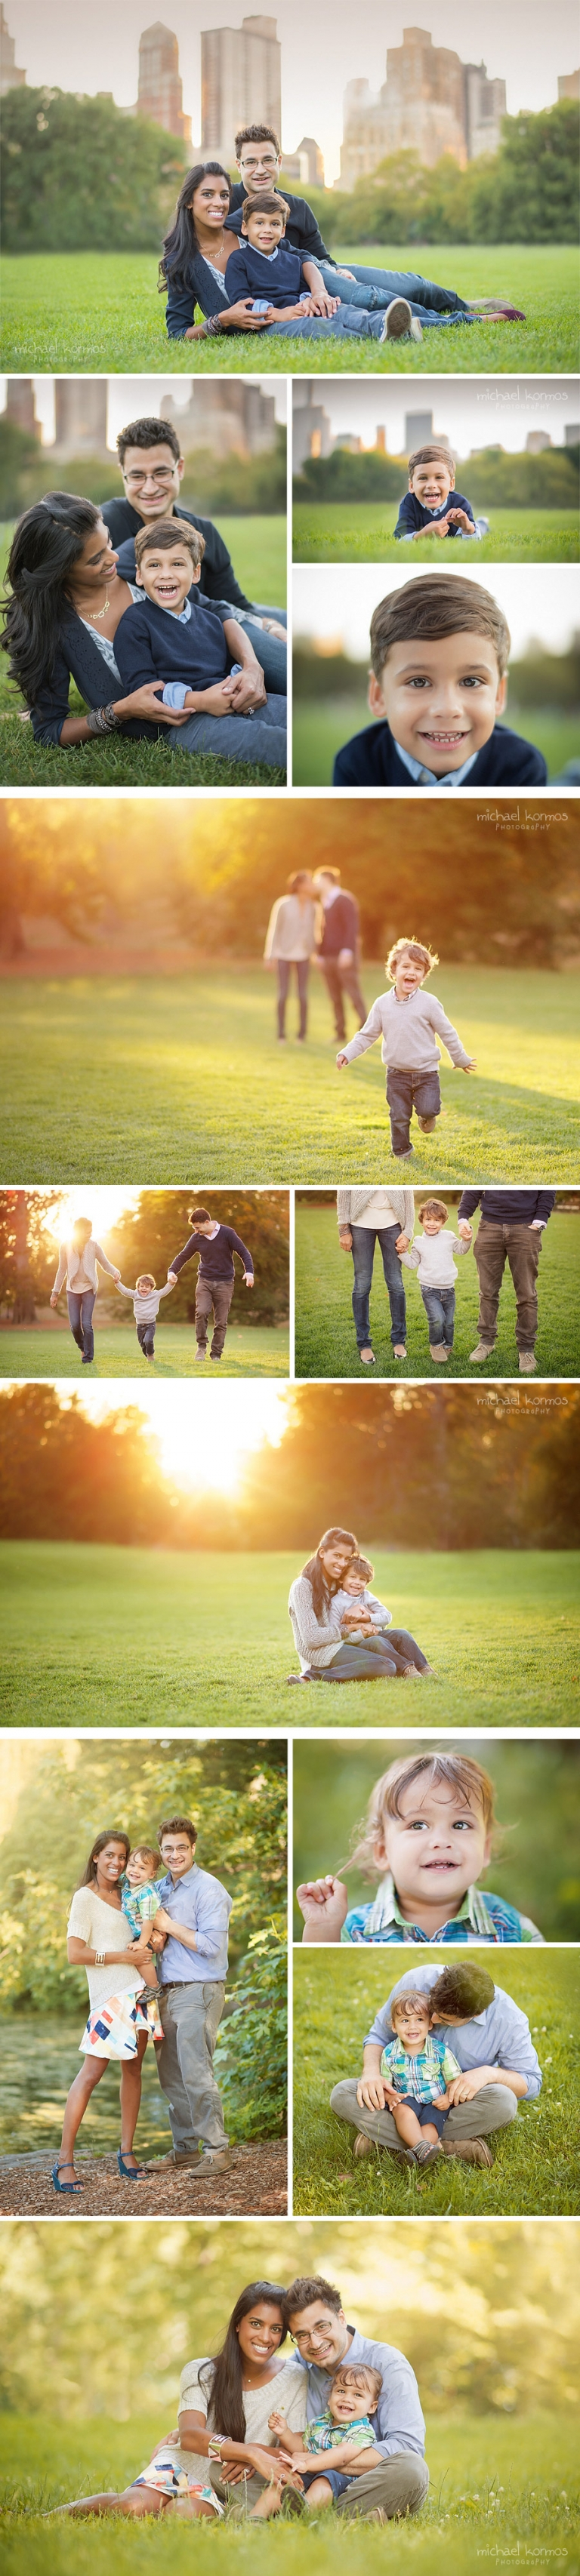 central park family photography